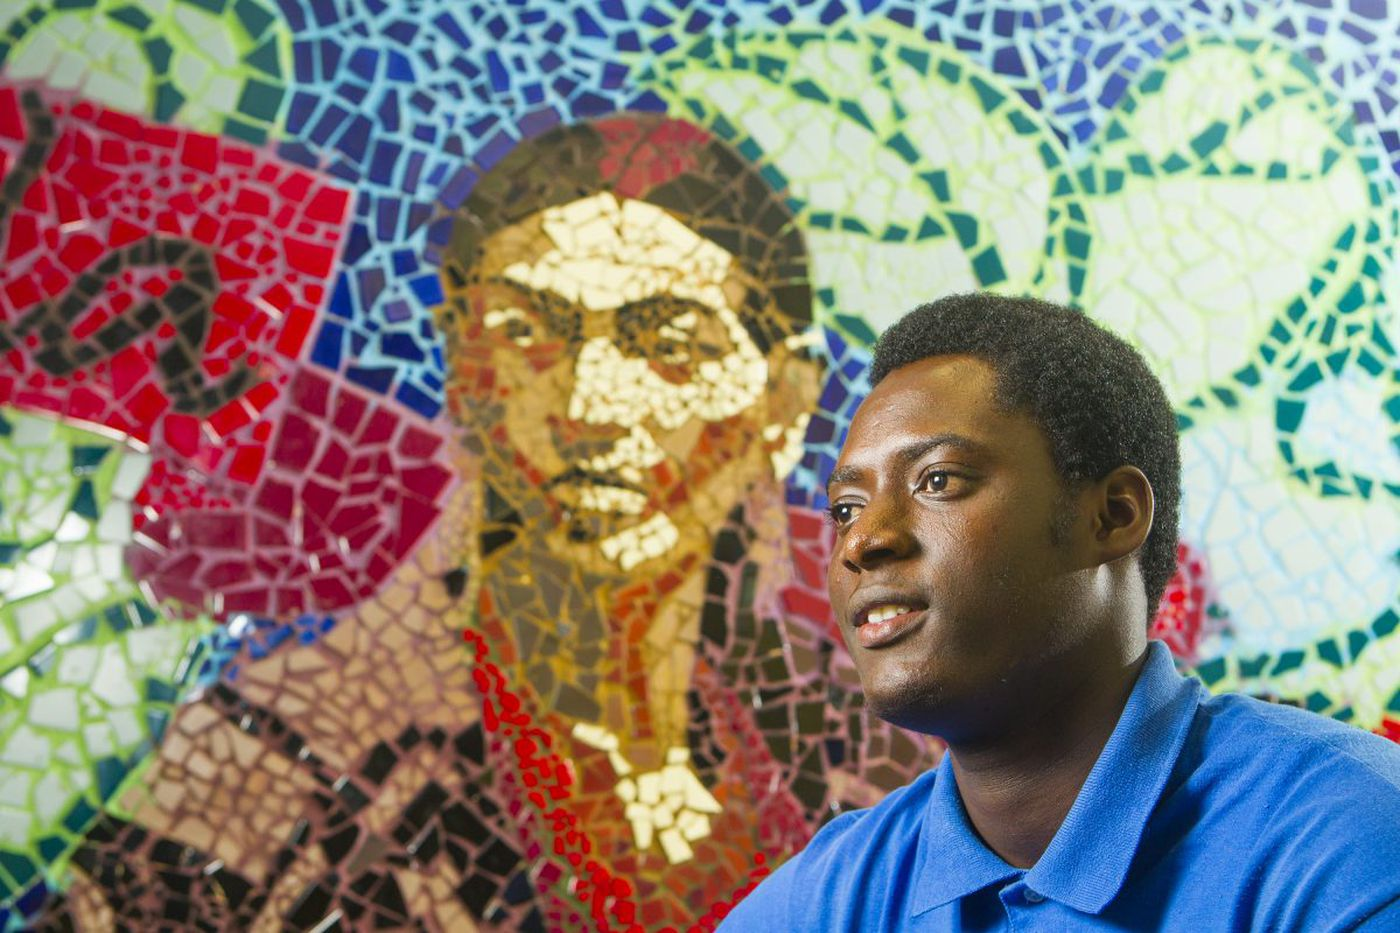 In Philly, opportunities - and honors - for one immigrant student